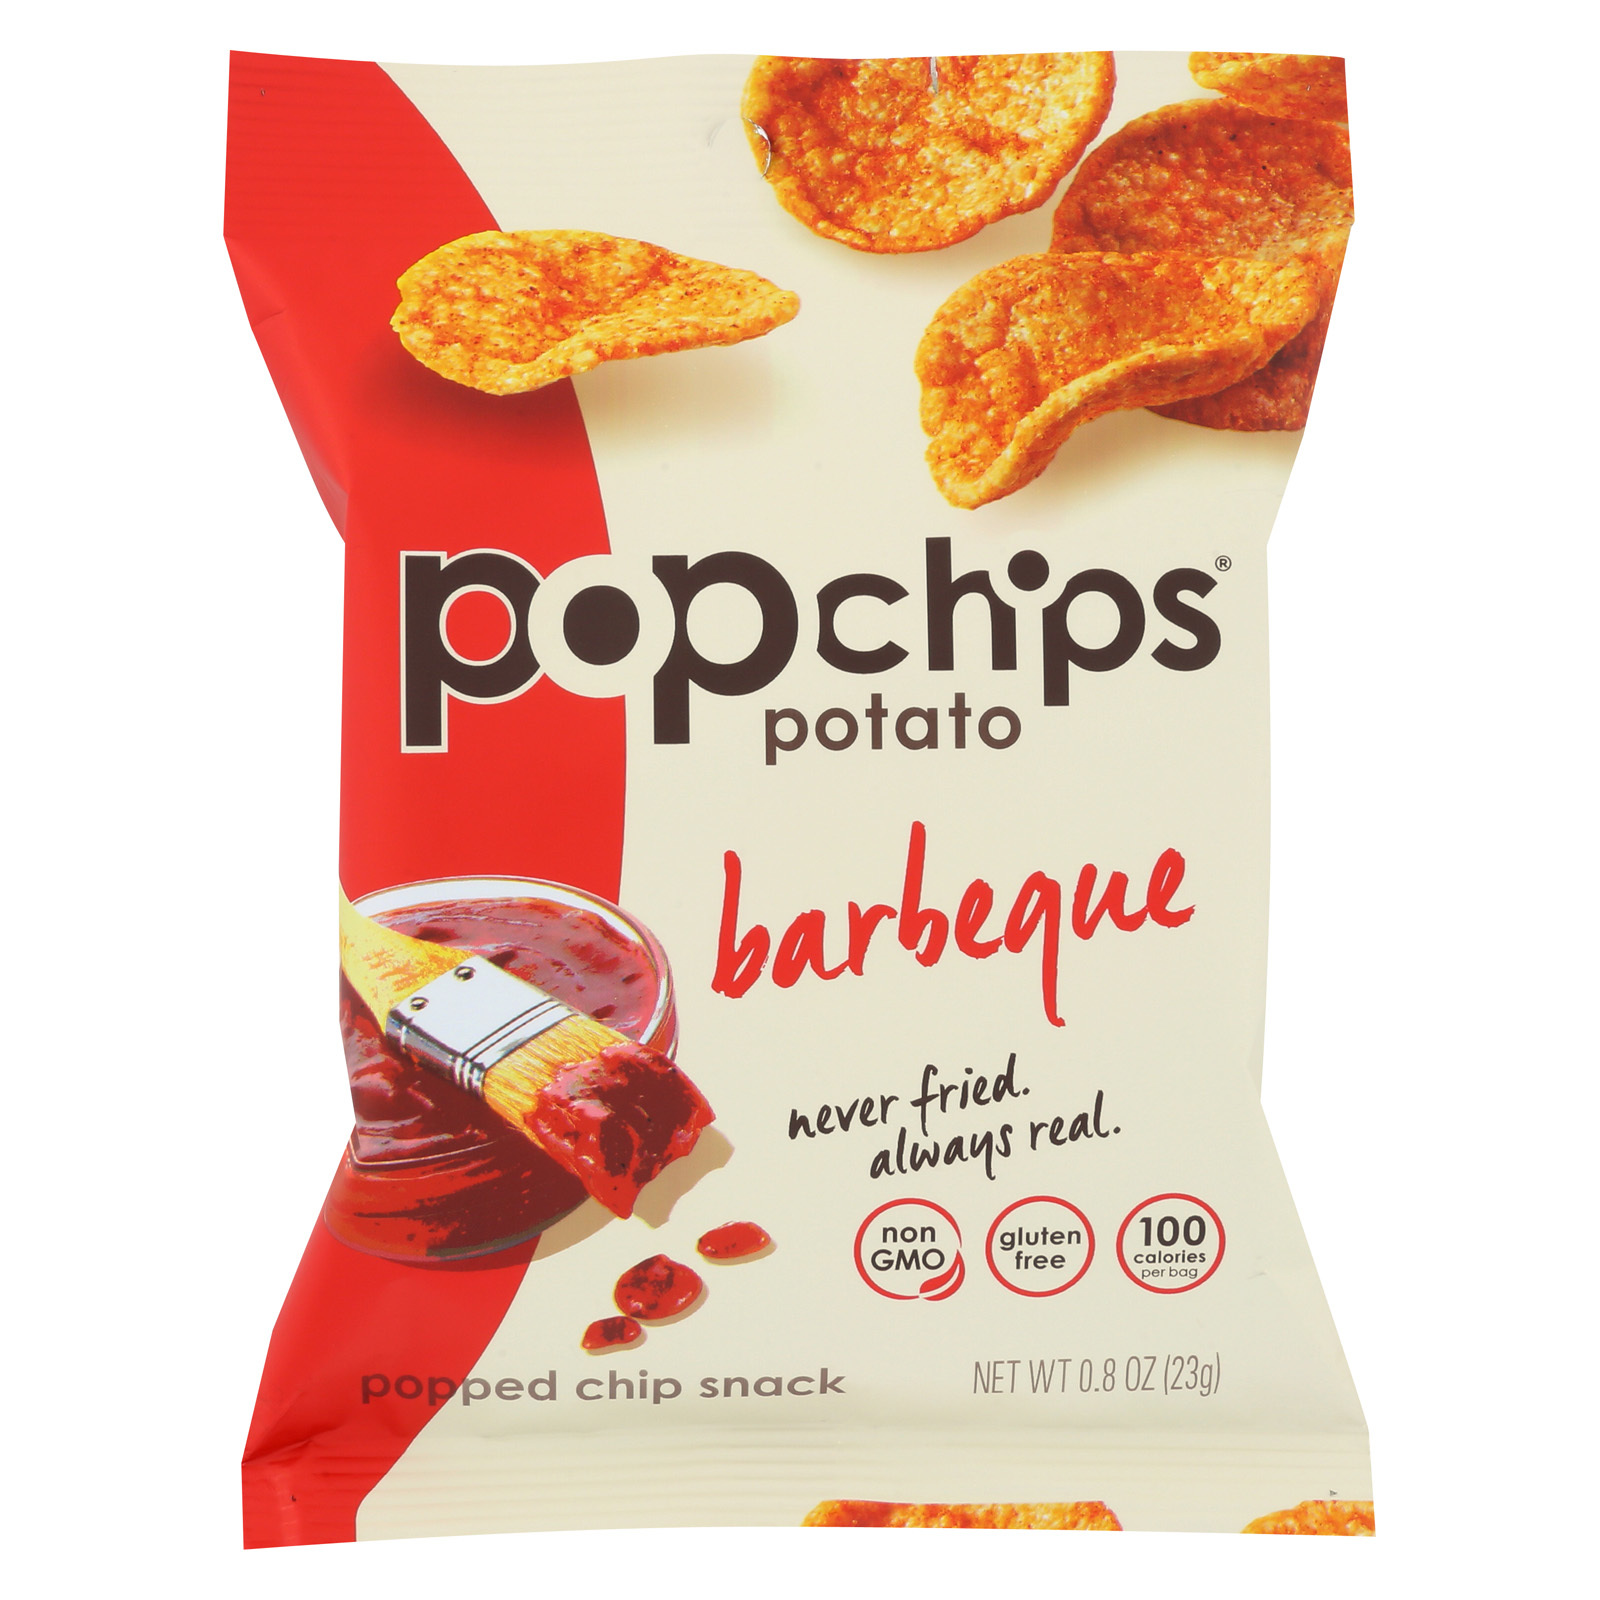 Popchips Potato Chip - Barbeque - Case of 24 - 0.8 oz.